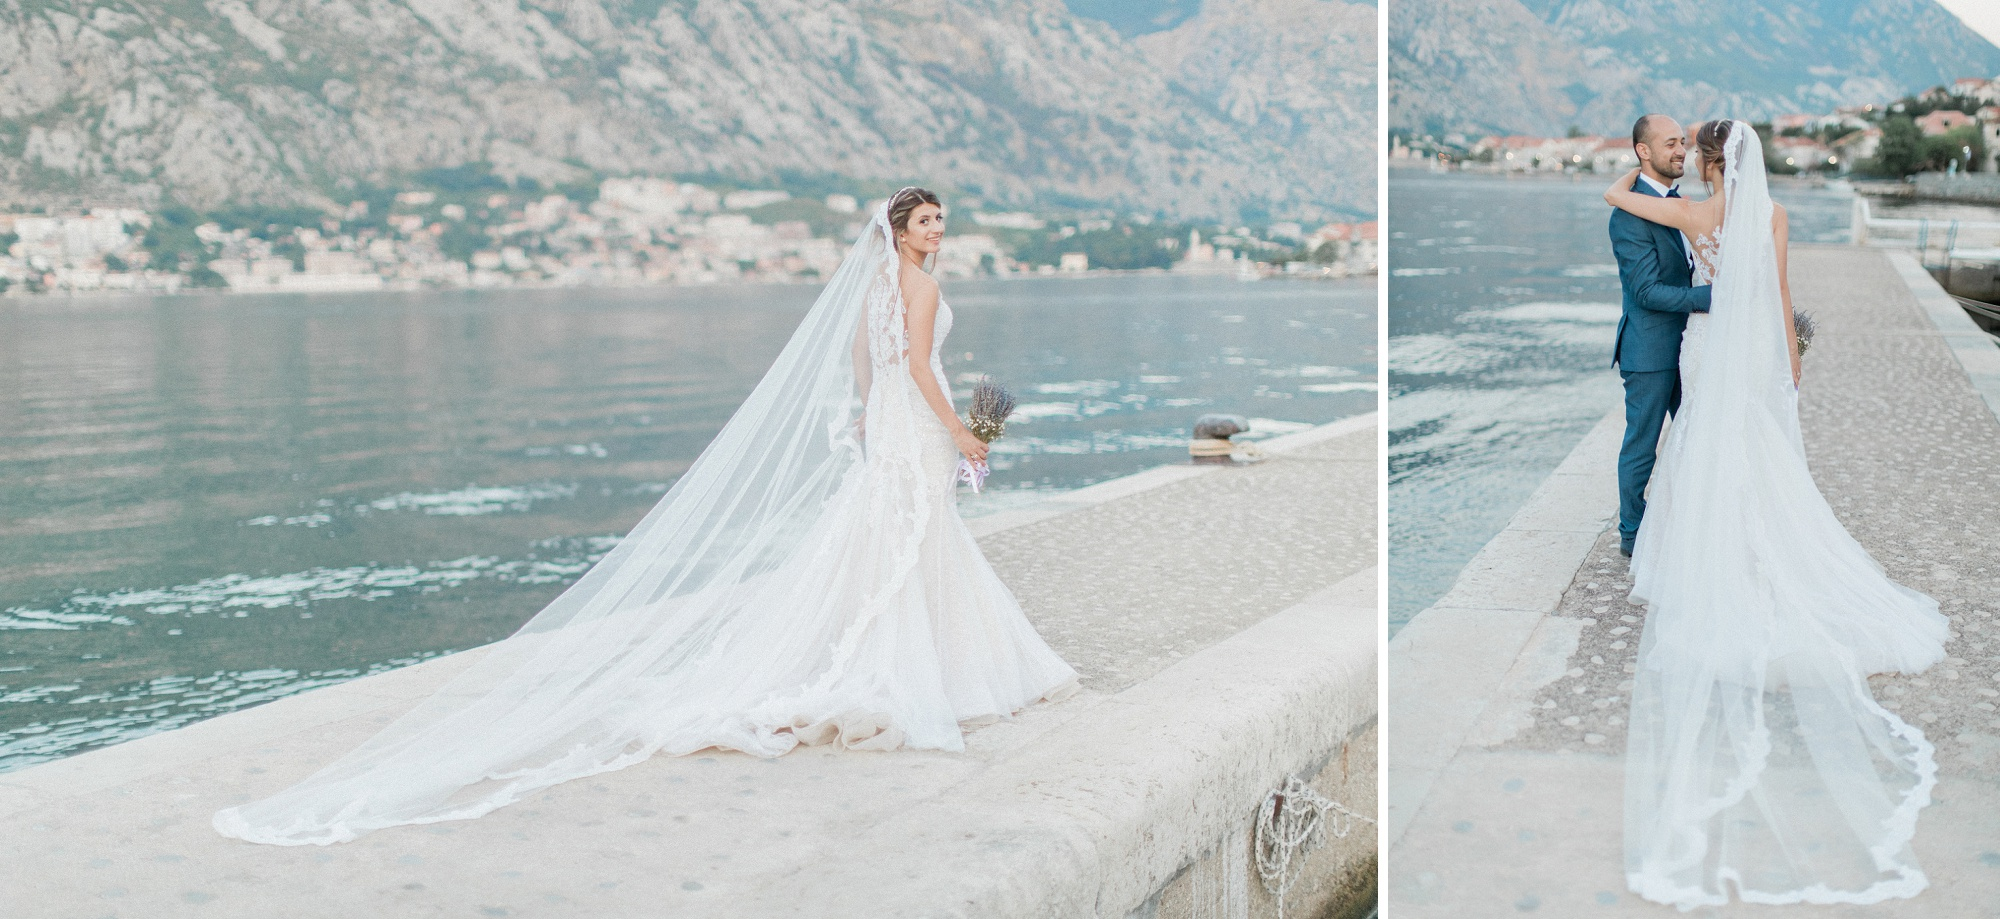 Albania Wedding Photographer - Anjeza Dyrmishi_0452.jpg